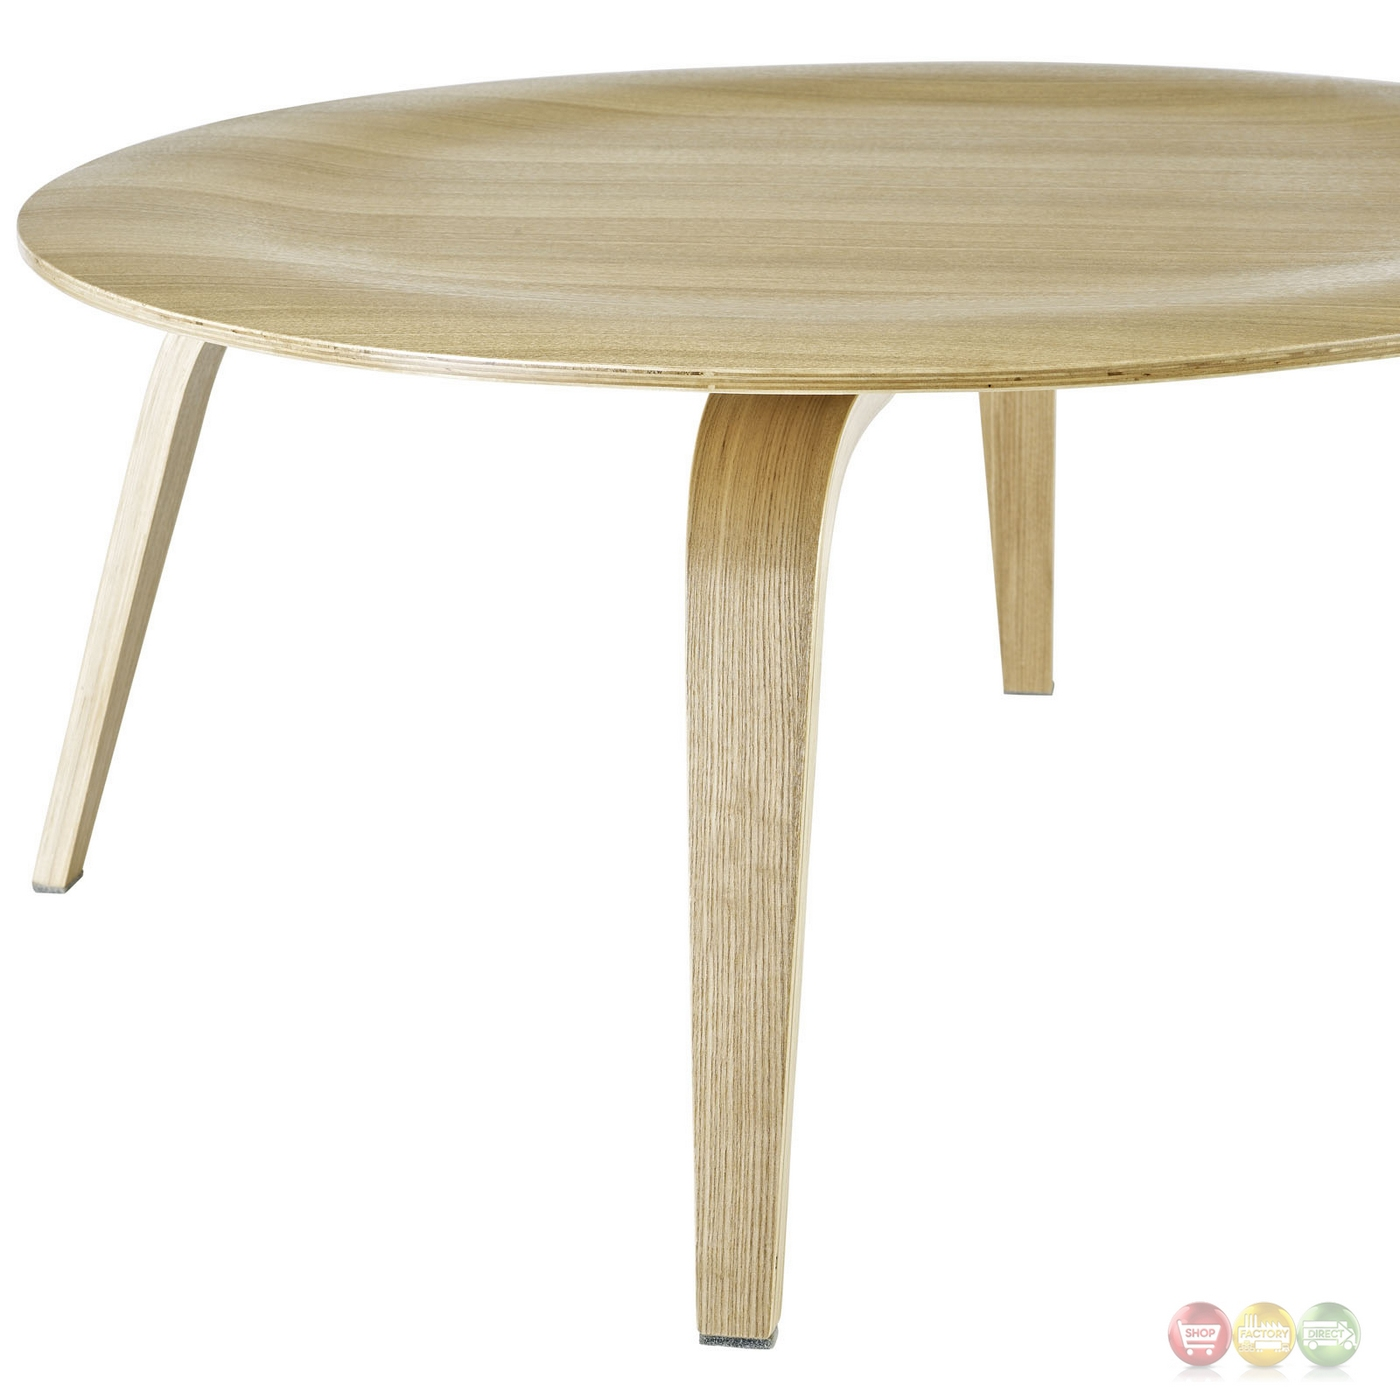 Modern Wood Coffee Table: Plywood Modern Wood Grain Panel Round Coffee Table, Natural